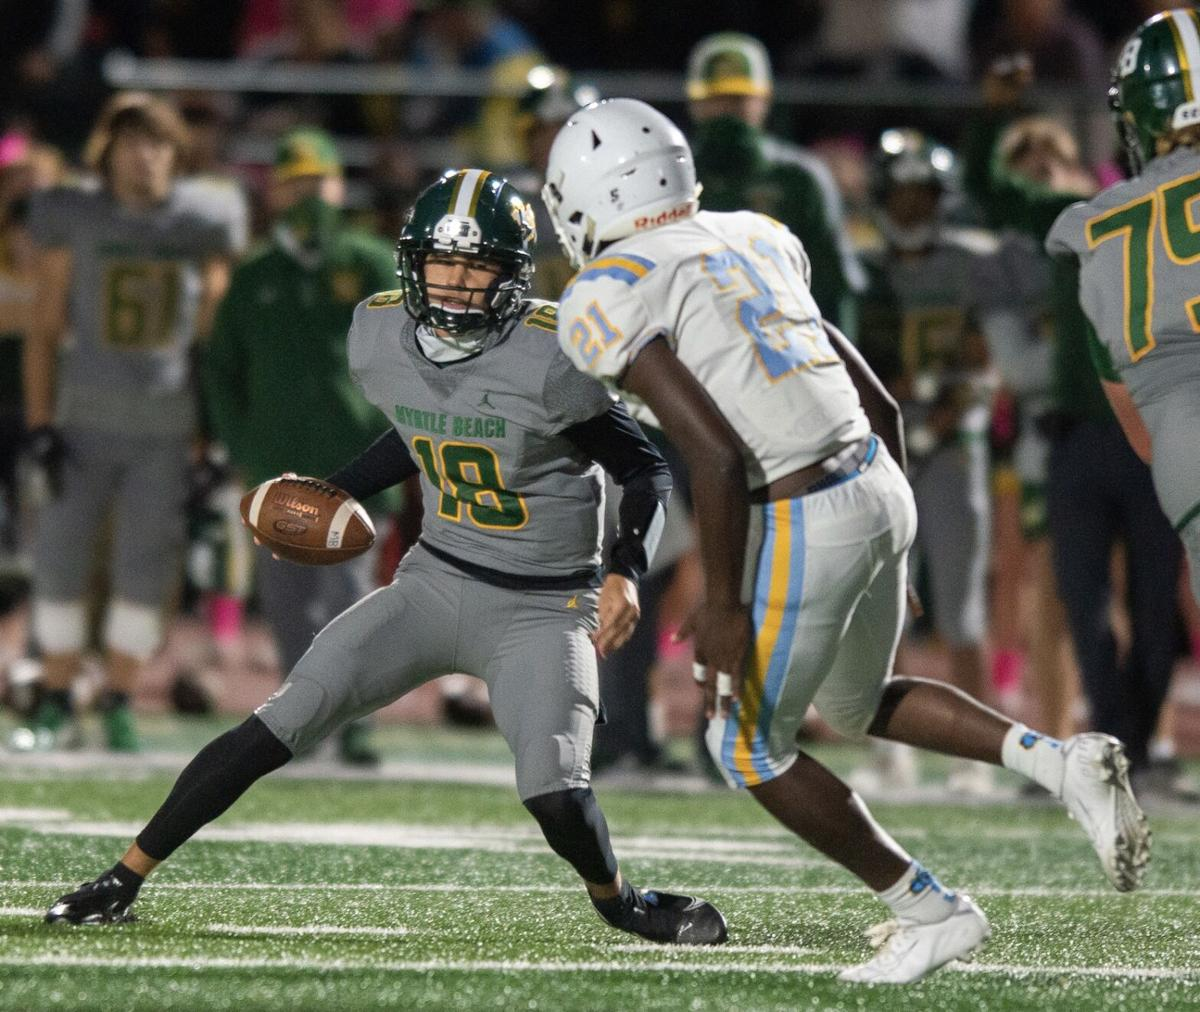 Myrtle Beach overpowers South Florence